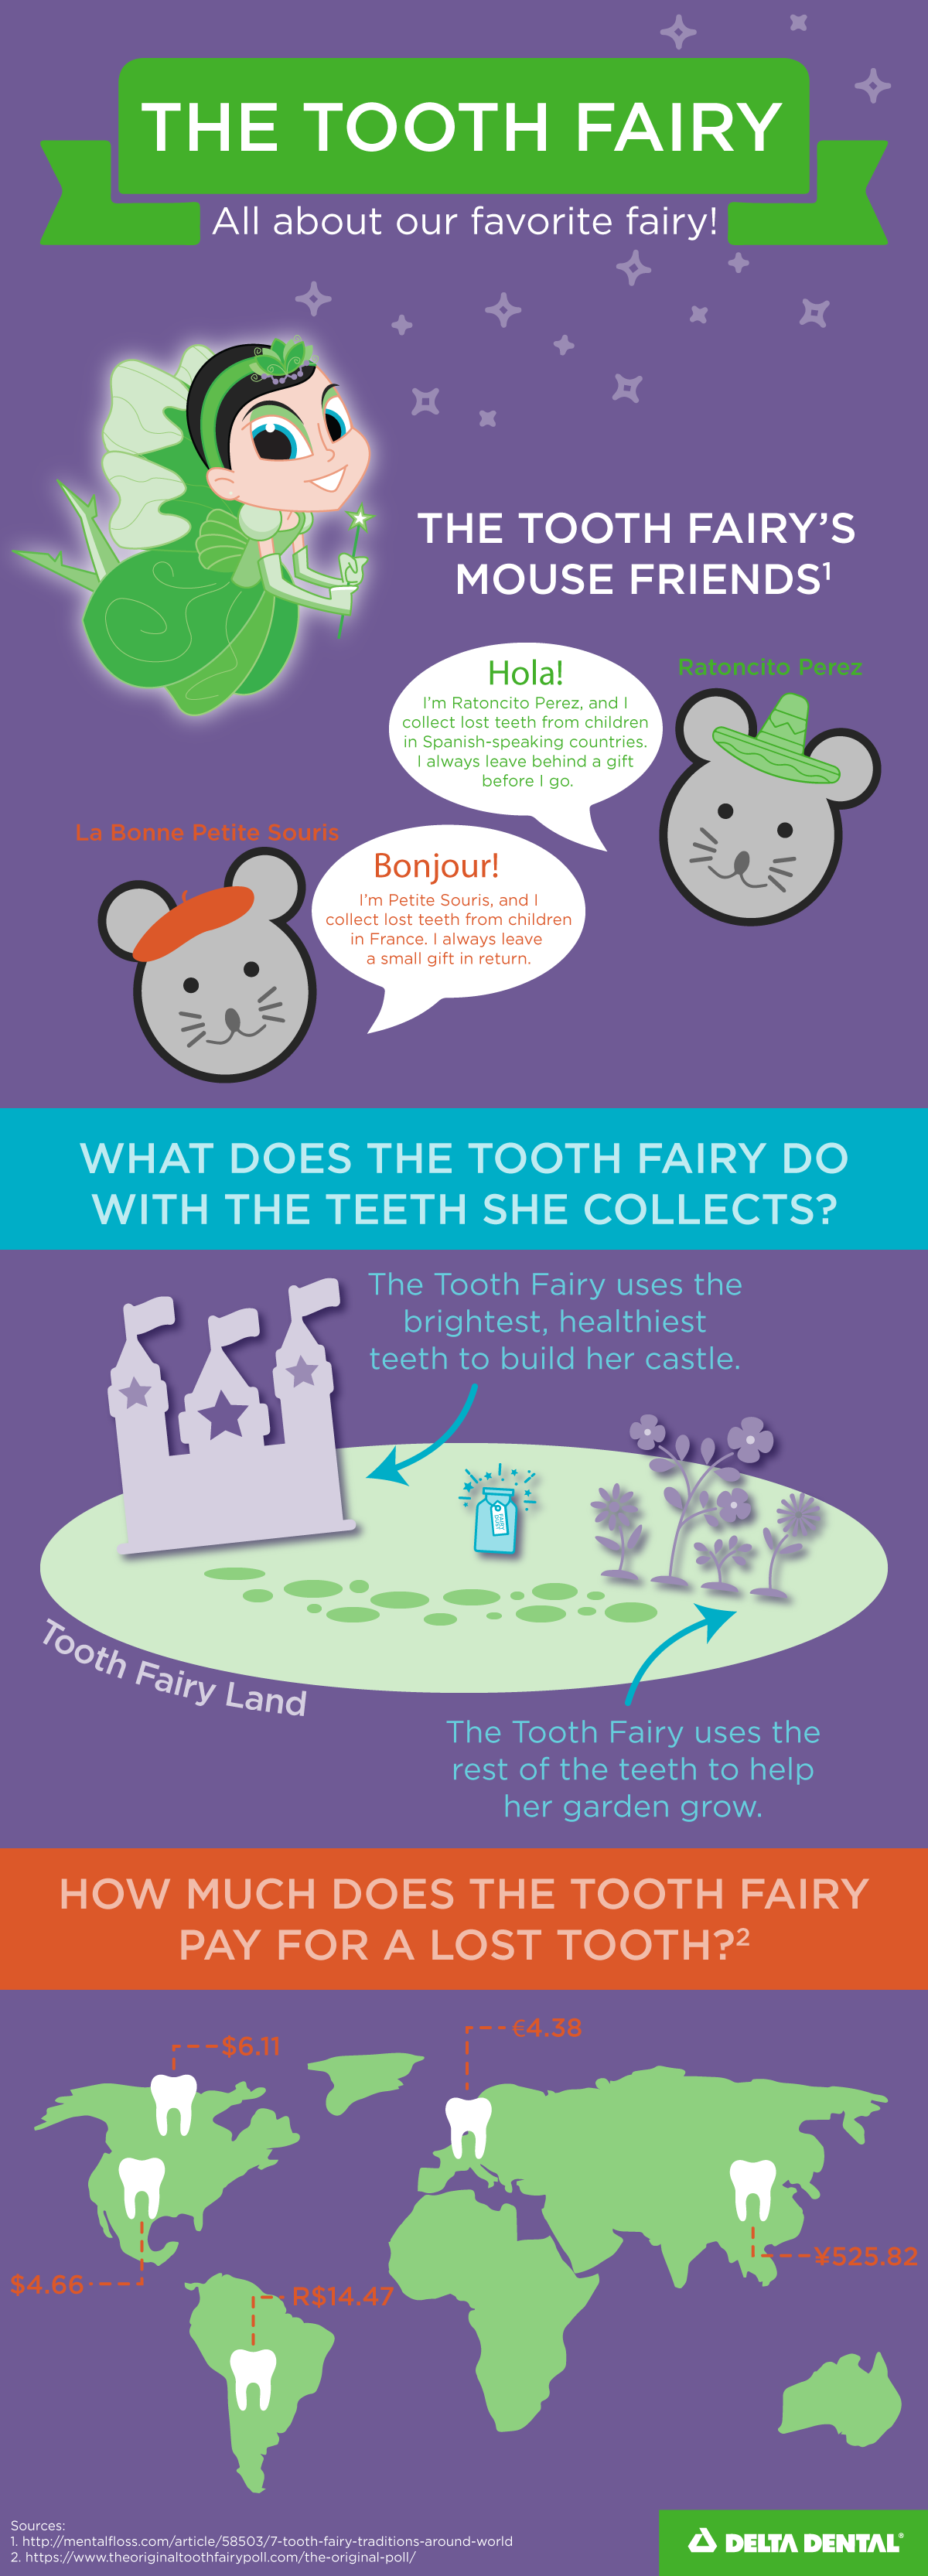 All-About-the-Tooth-Fairyinfographic_OLD.png